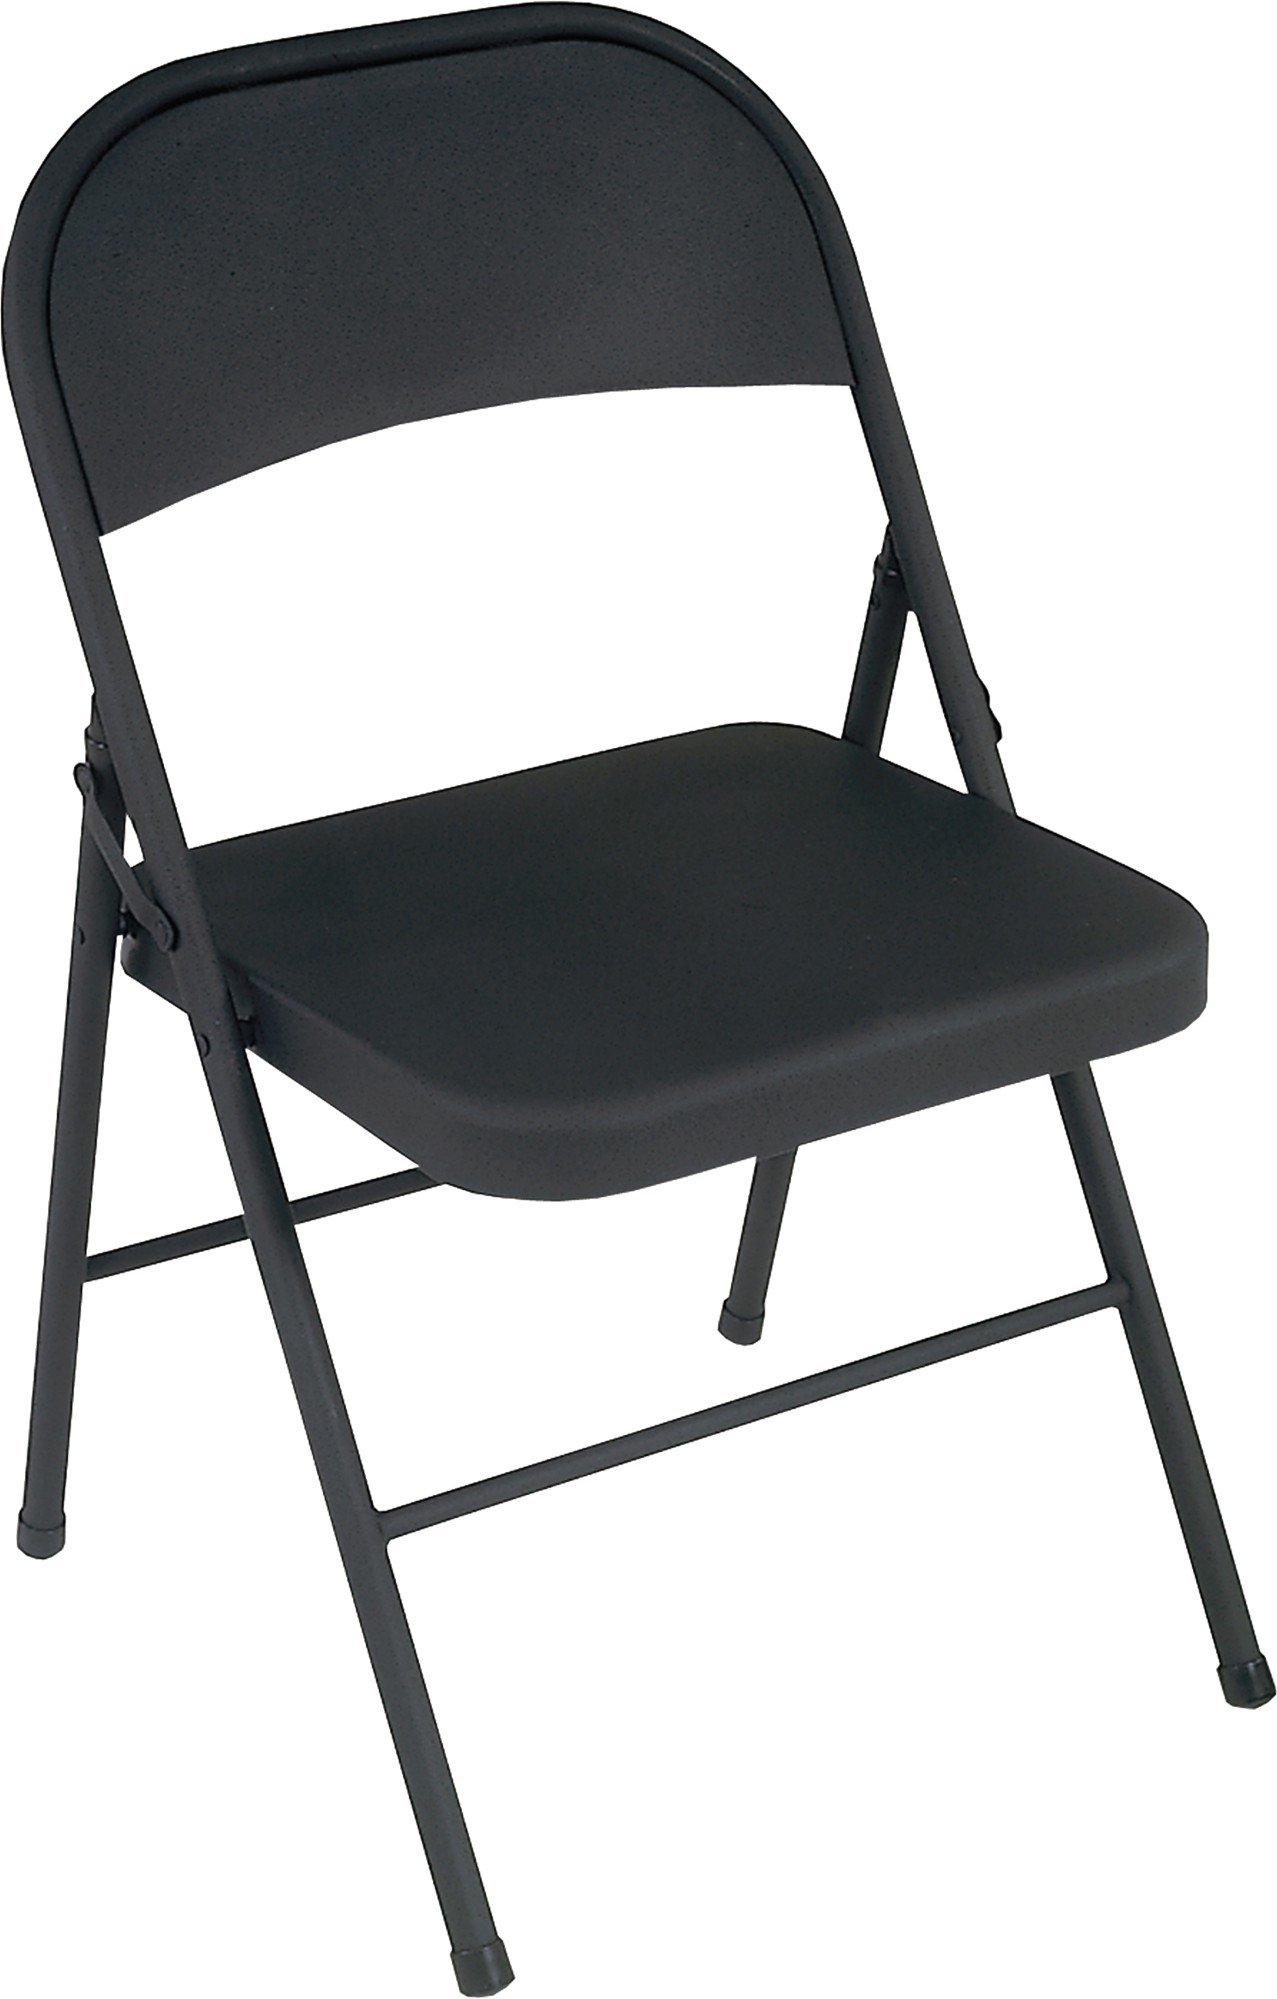 Cosco All Steel Folding Chair Black (4-pack) - 1471105XE by Cosco